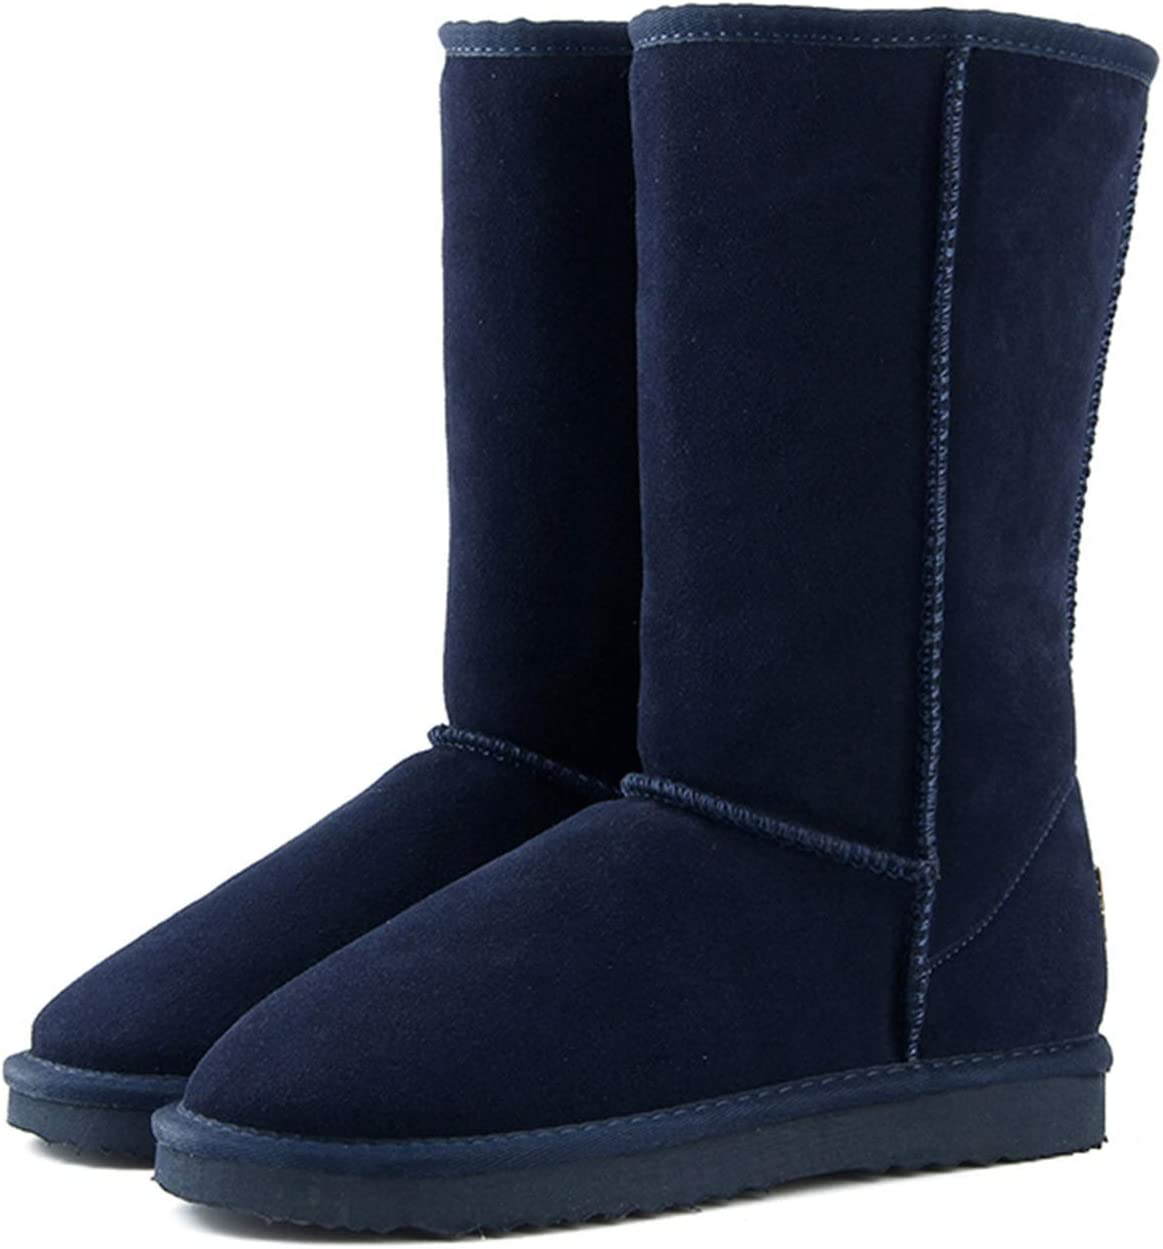 JIU SI Genuine Leather Fur Snow Boots Women Top Boots Winter Boots for Women Warm (Color : Navy Blue, Size : 38)